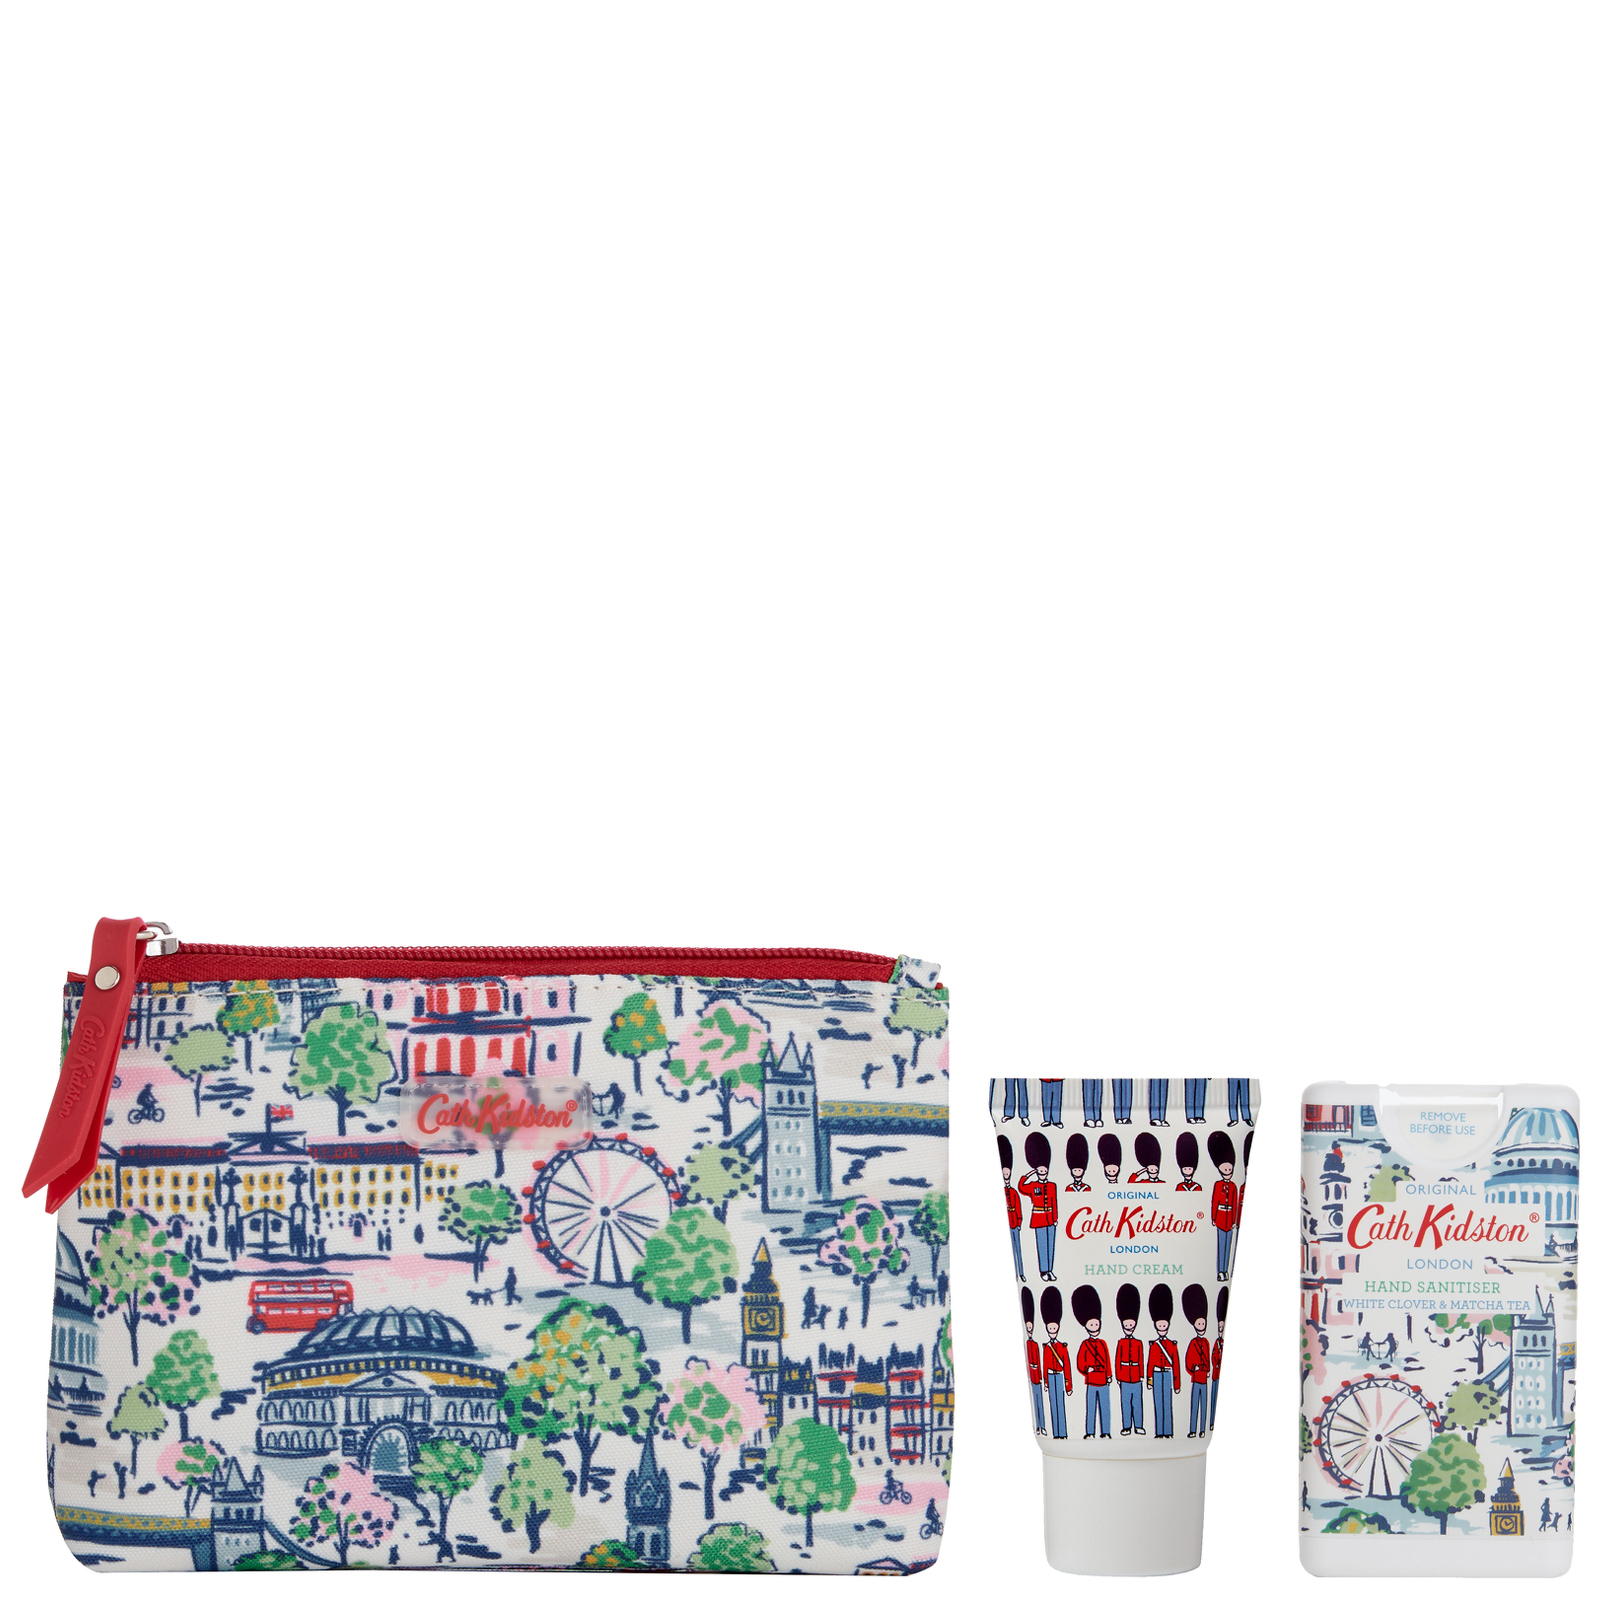 Cath Kidston Gifts & Sets London Cosmetic Pouch Gift Set